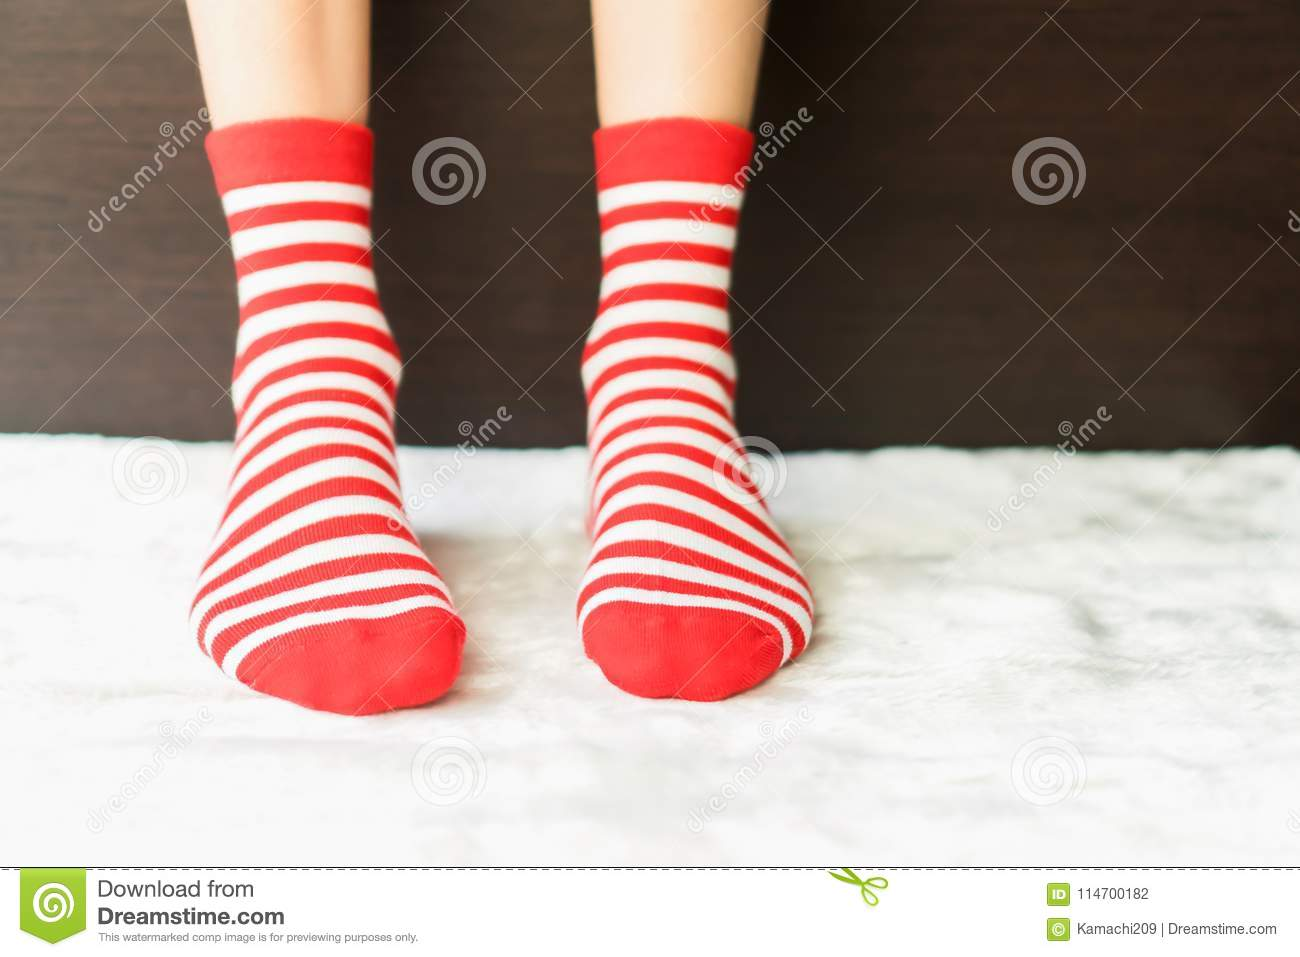 Legs in socks red colors alternate, white side stand on white fabric floor.